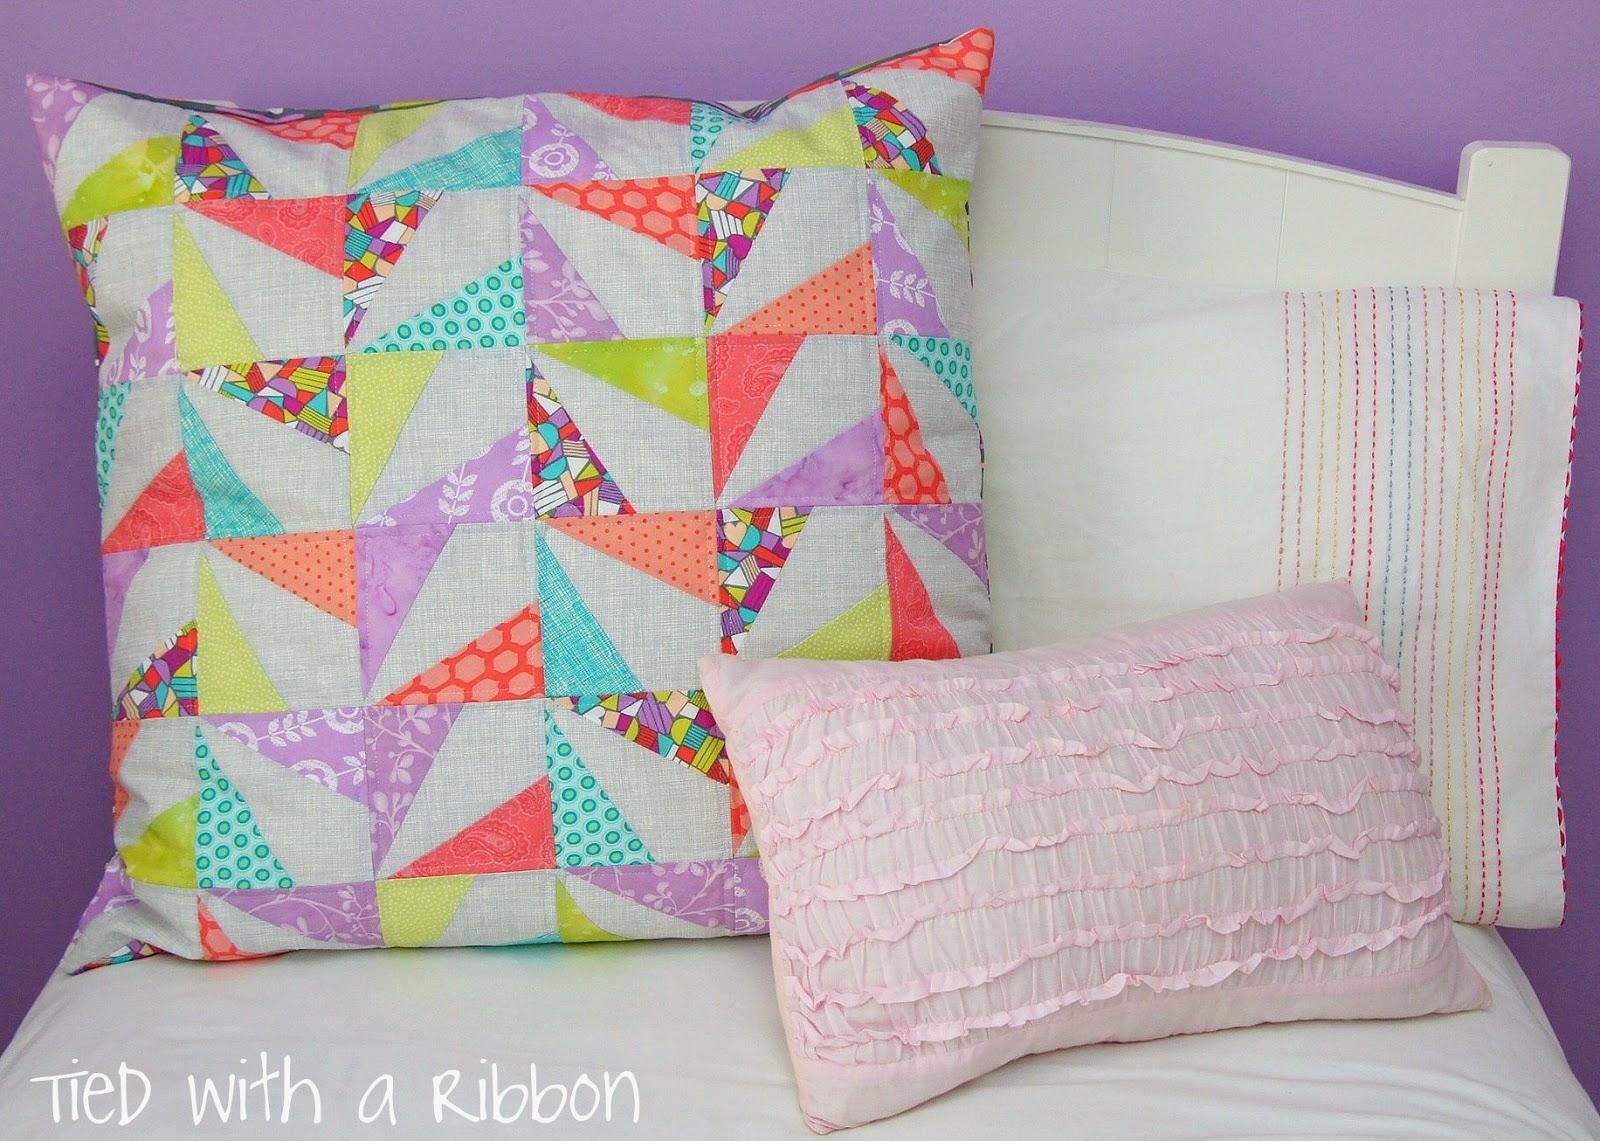 confetti-cushion-tutorial-textb